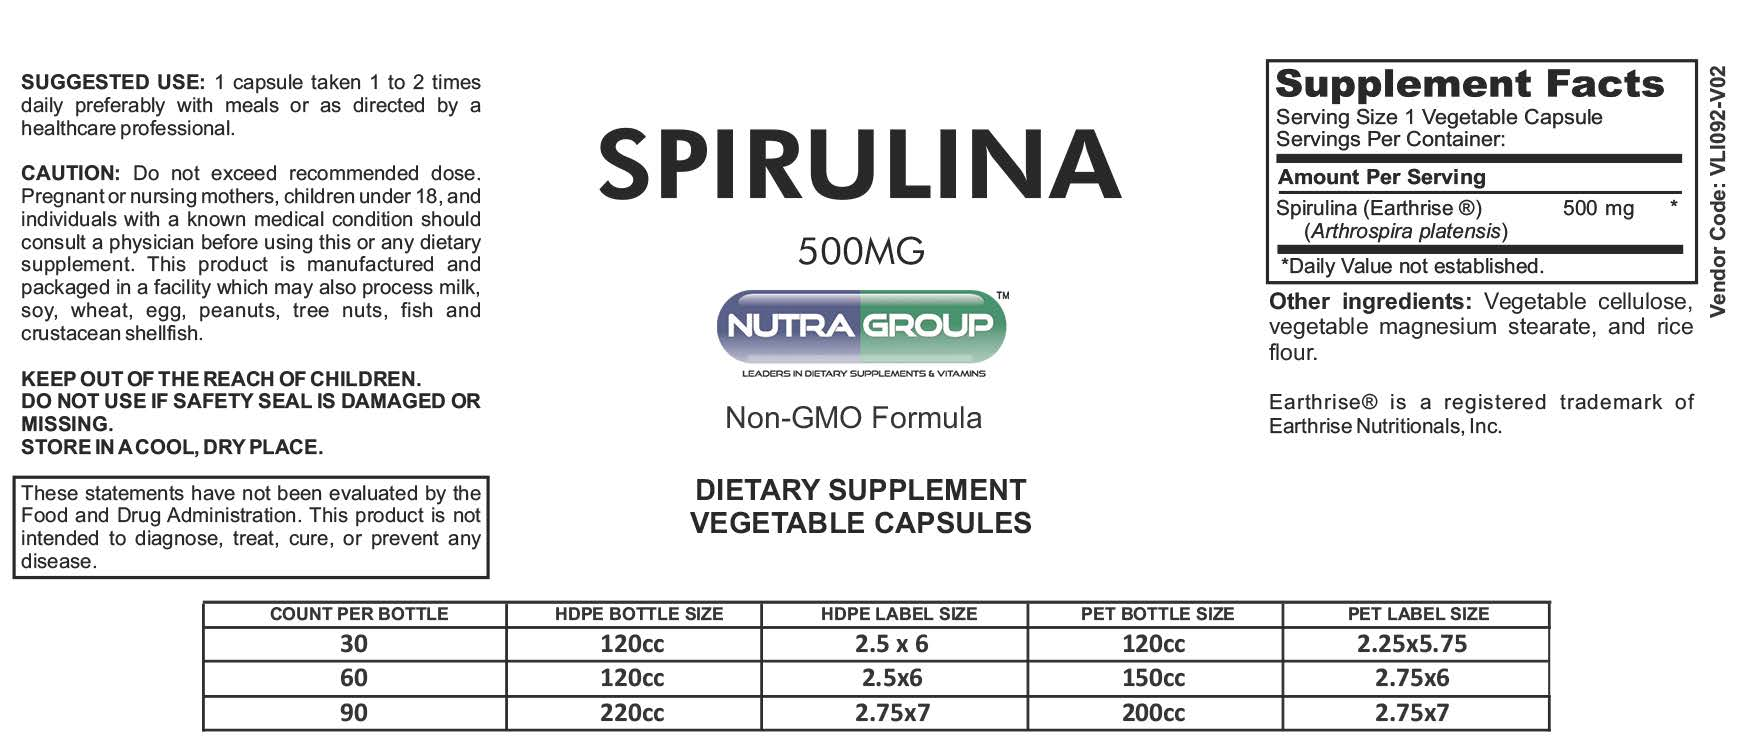 Private Label Spirulina capsules